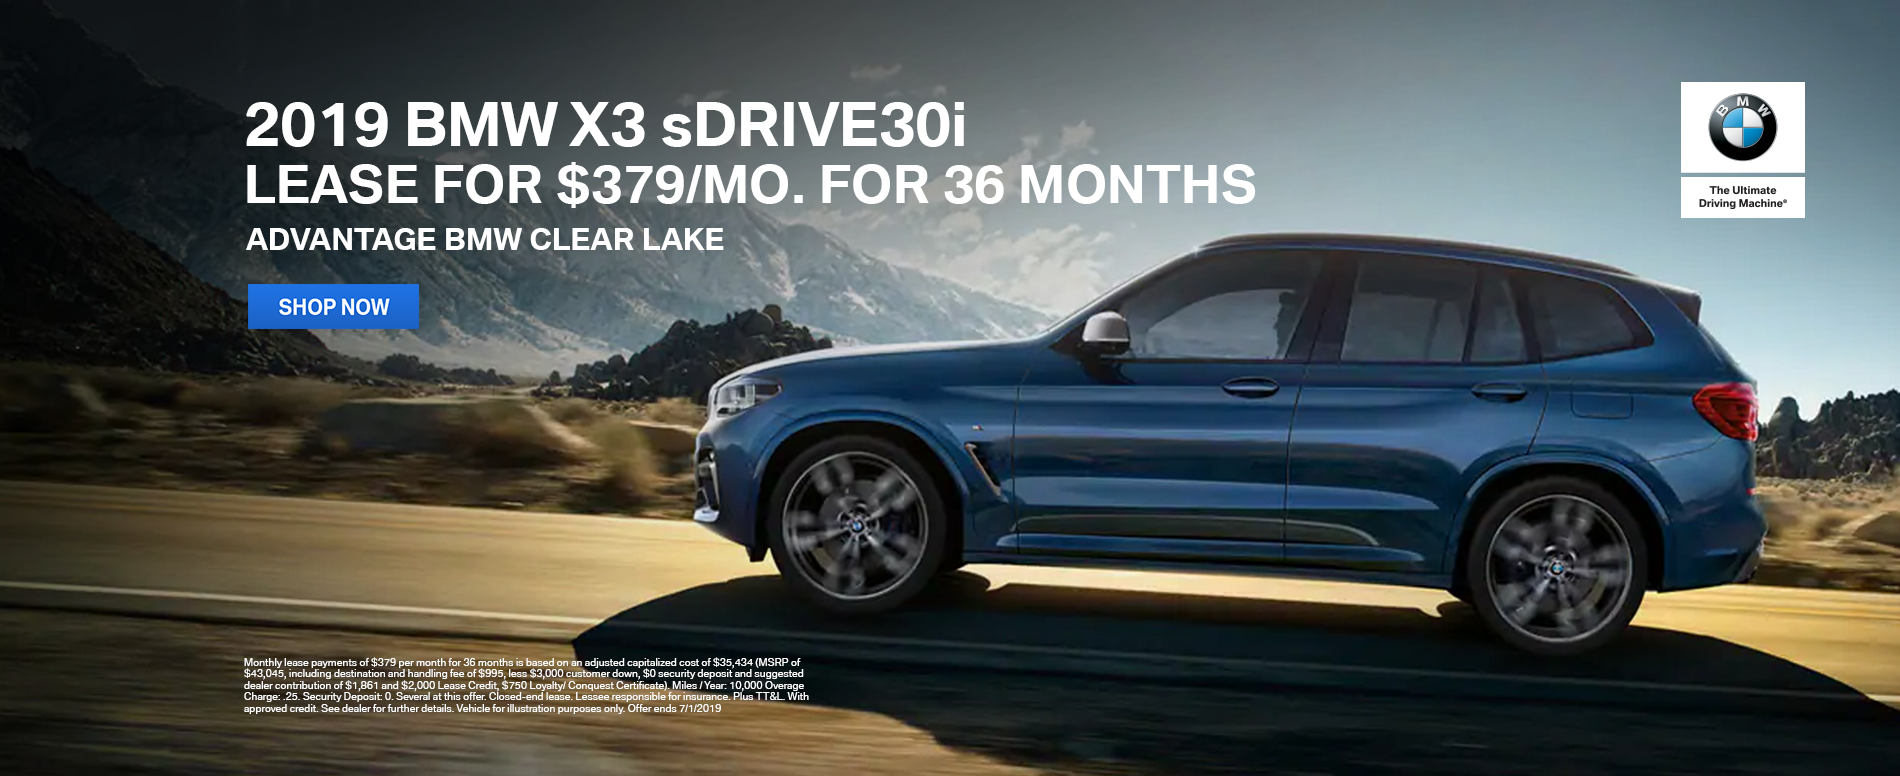 lease-2019-bmw-x3-sdrive30i-for-379-per-month-clearlake